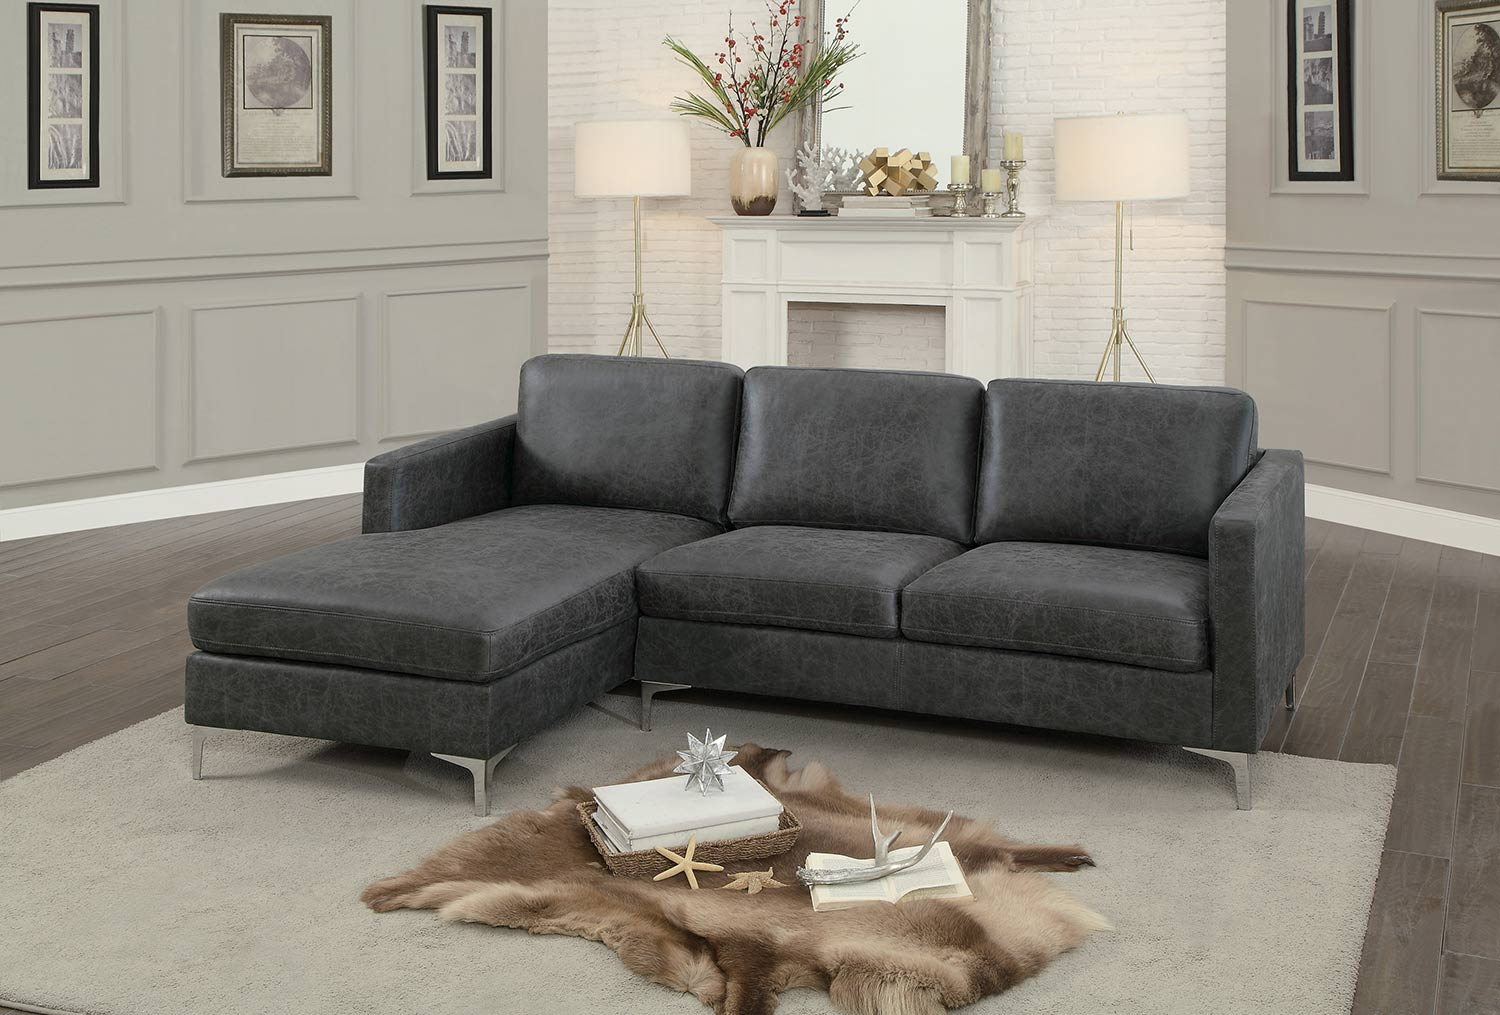 Homelegance Breaux Sectional Sofa   Gray Fabric